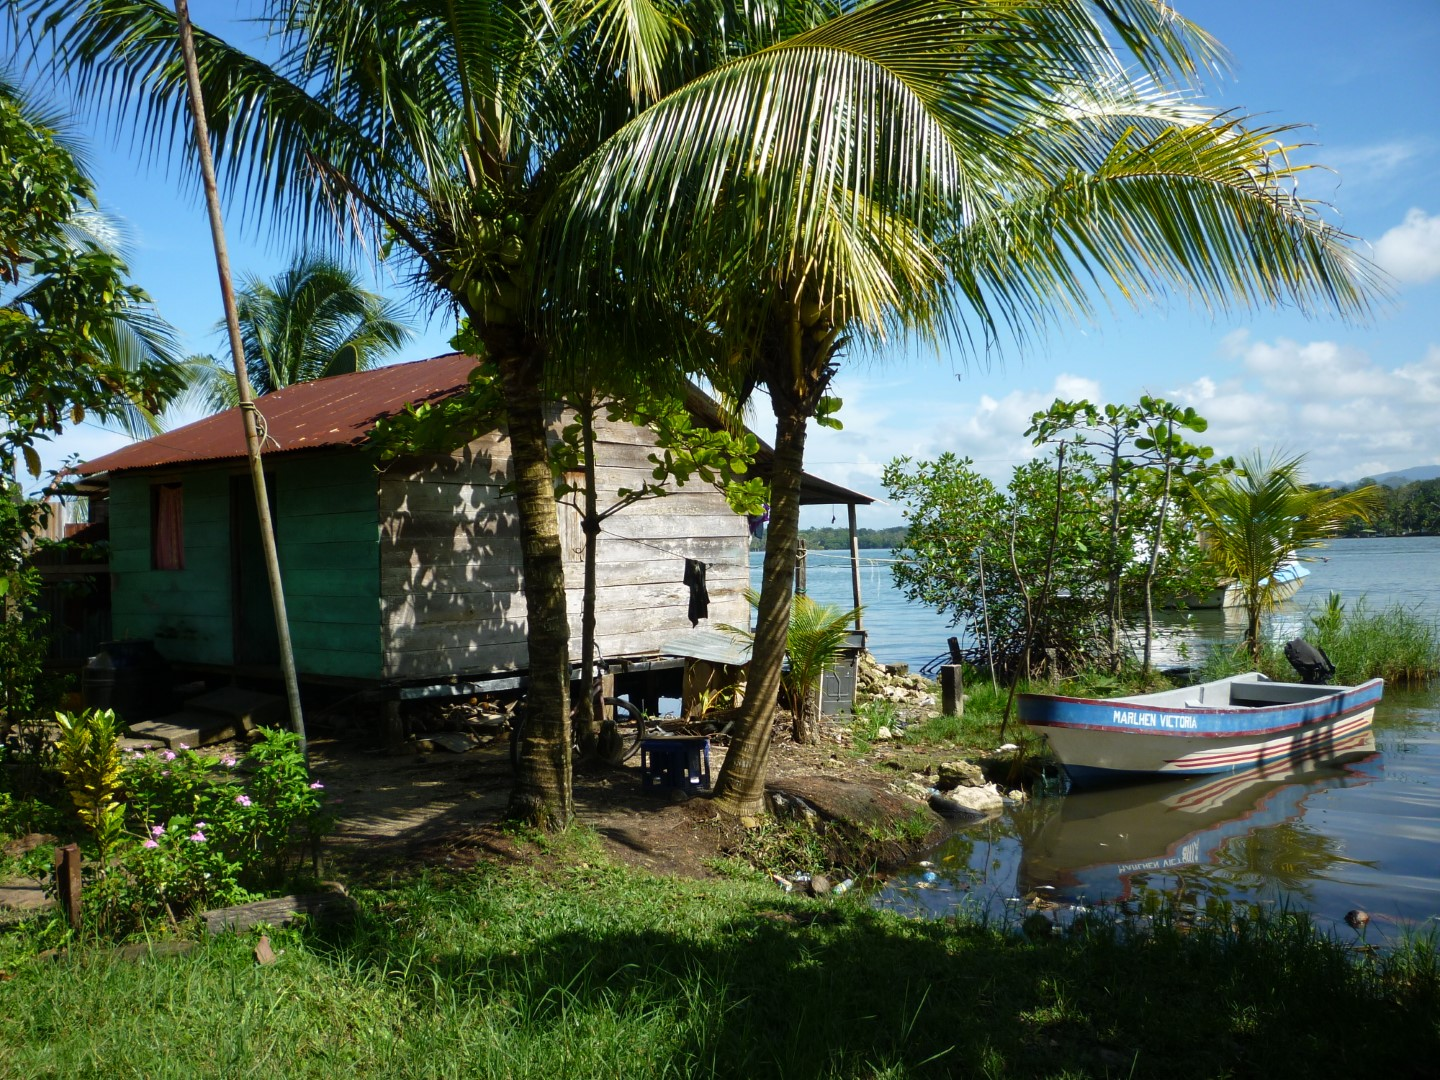 House by sea in Livingston, Guatemala